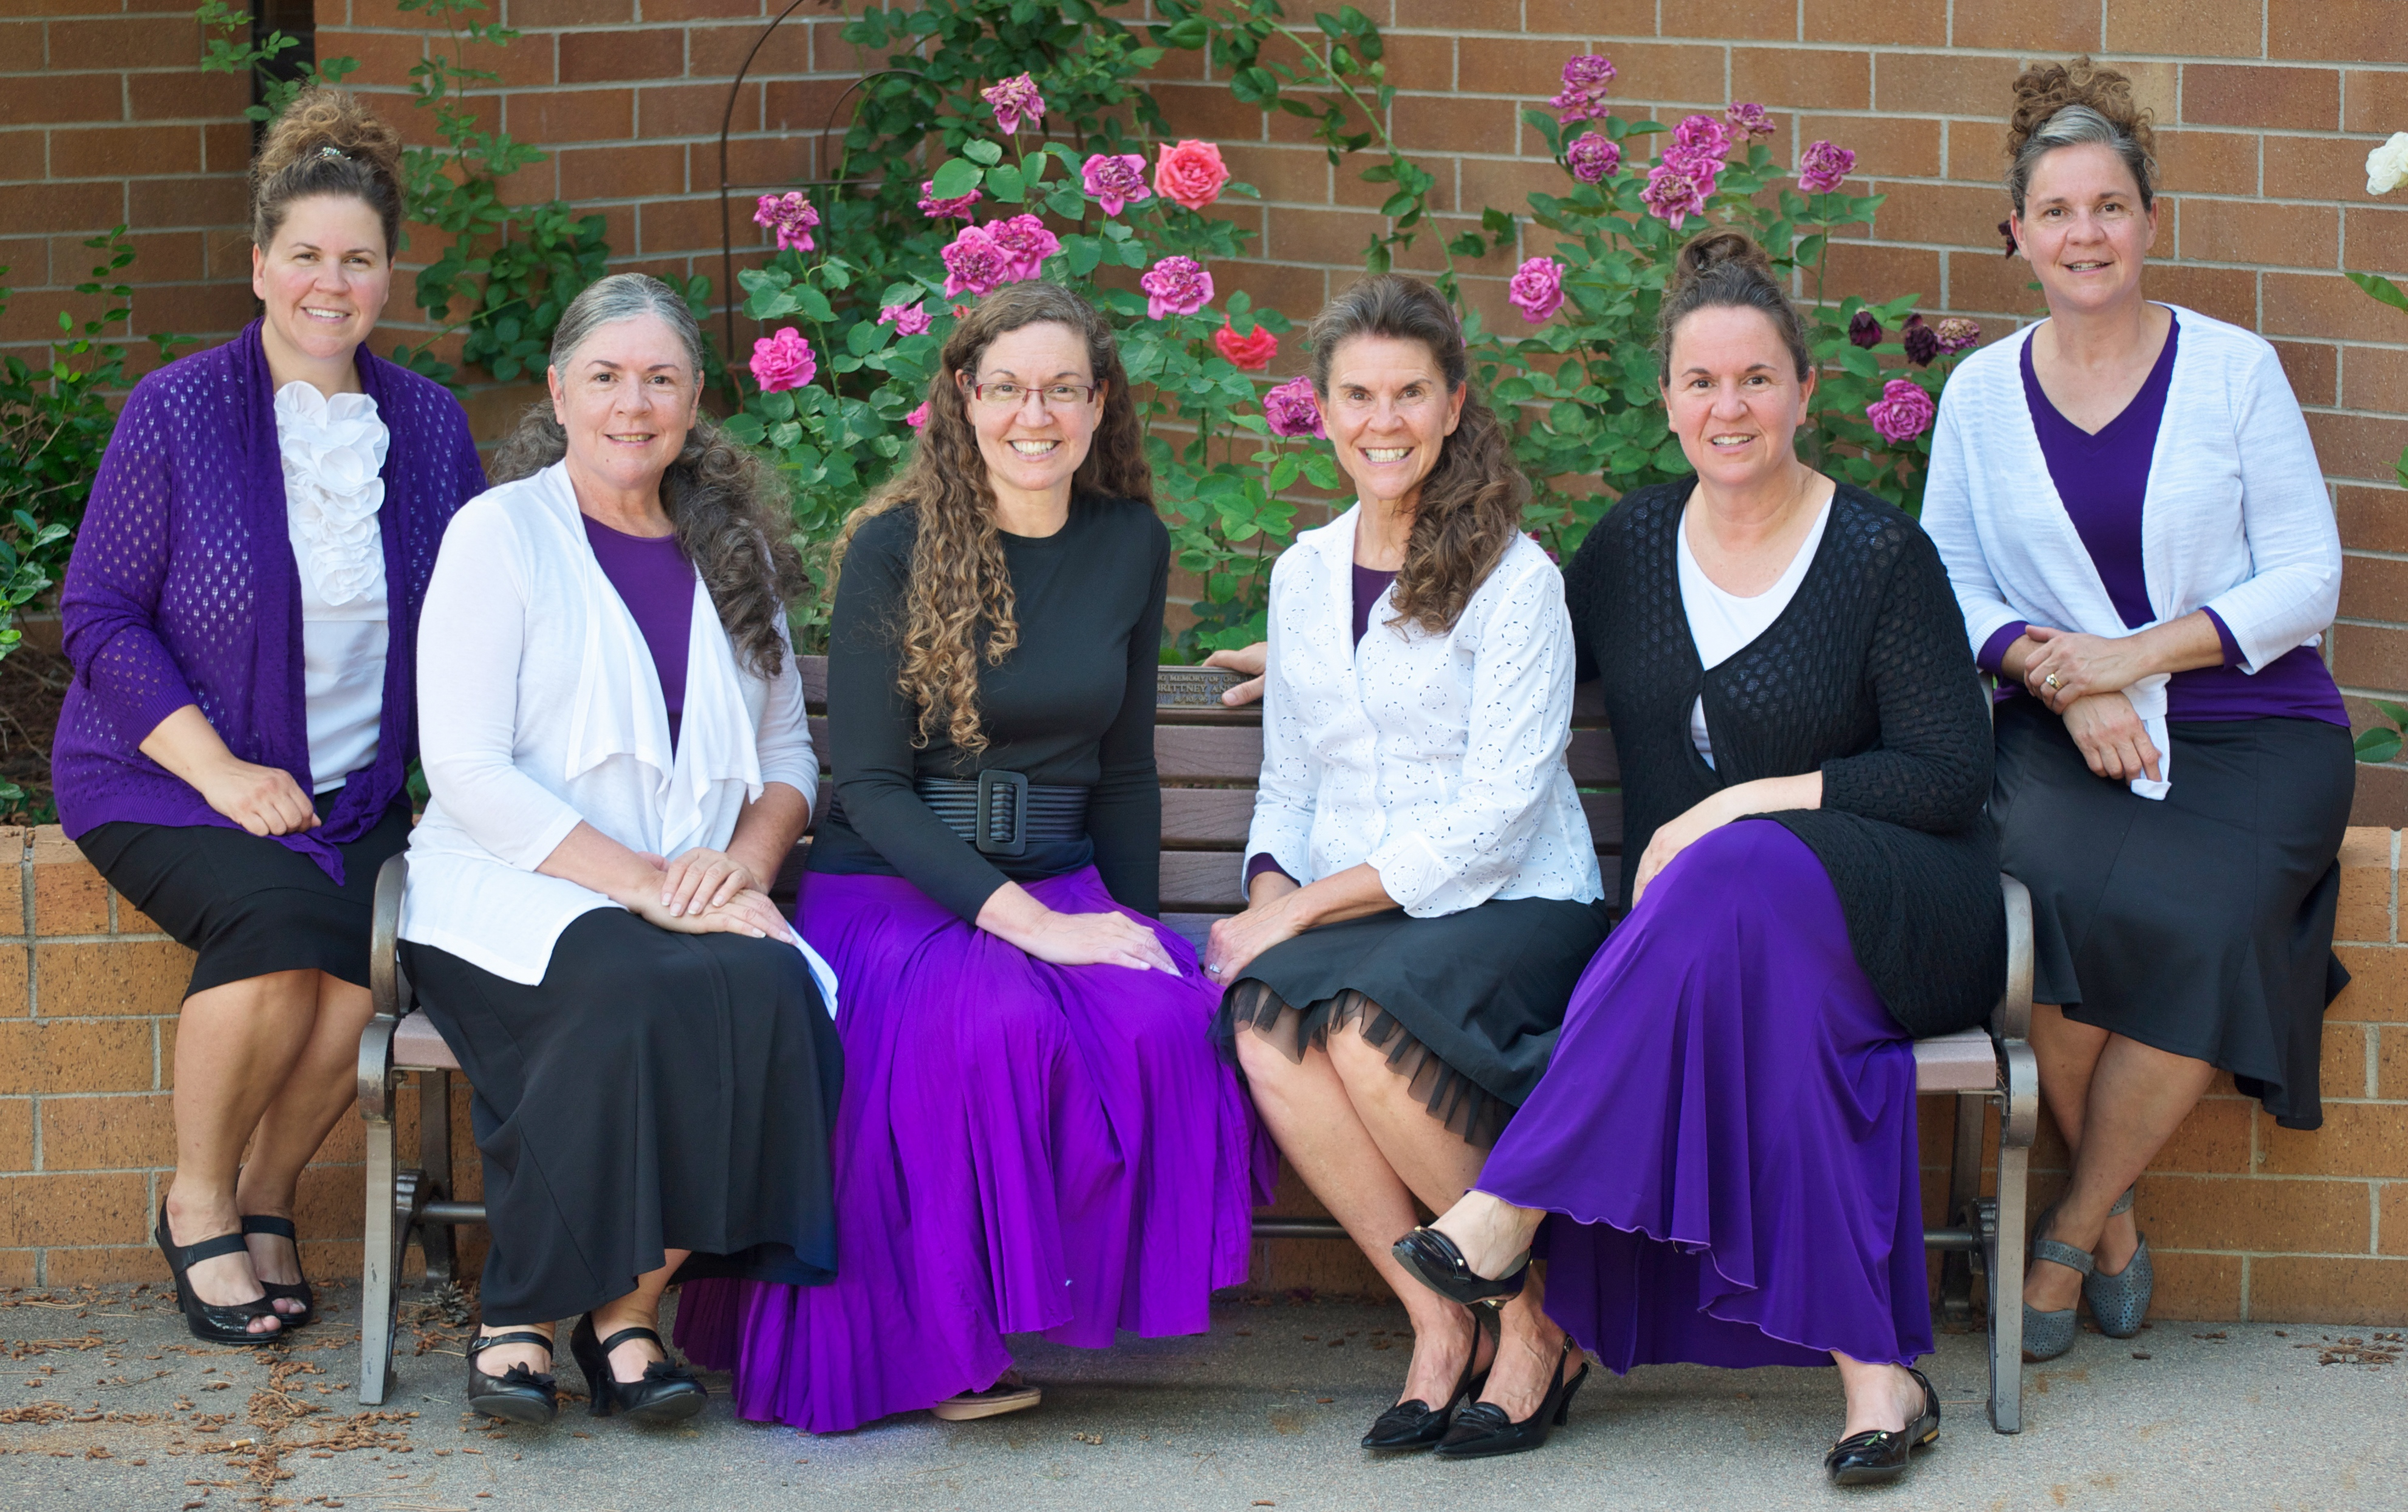 death and paralysis in the sisters She began teaching about god's goodness at an early age, and despite a  paralysis that crippled her at the age of 22, julie continued teaching until her  death.